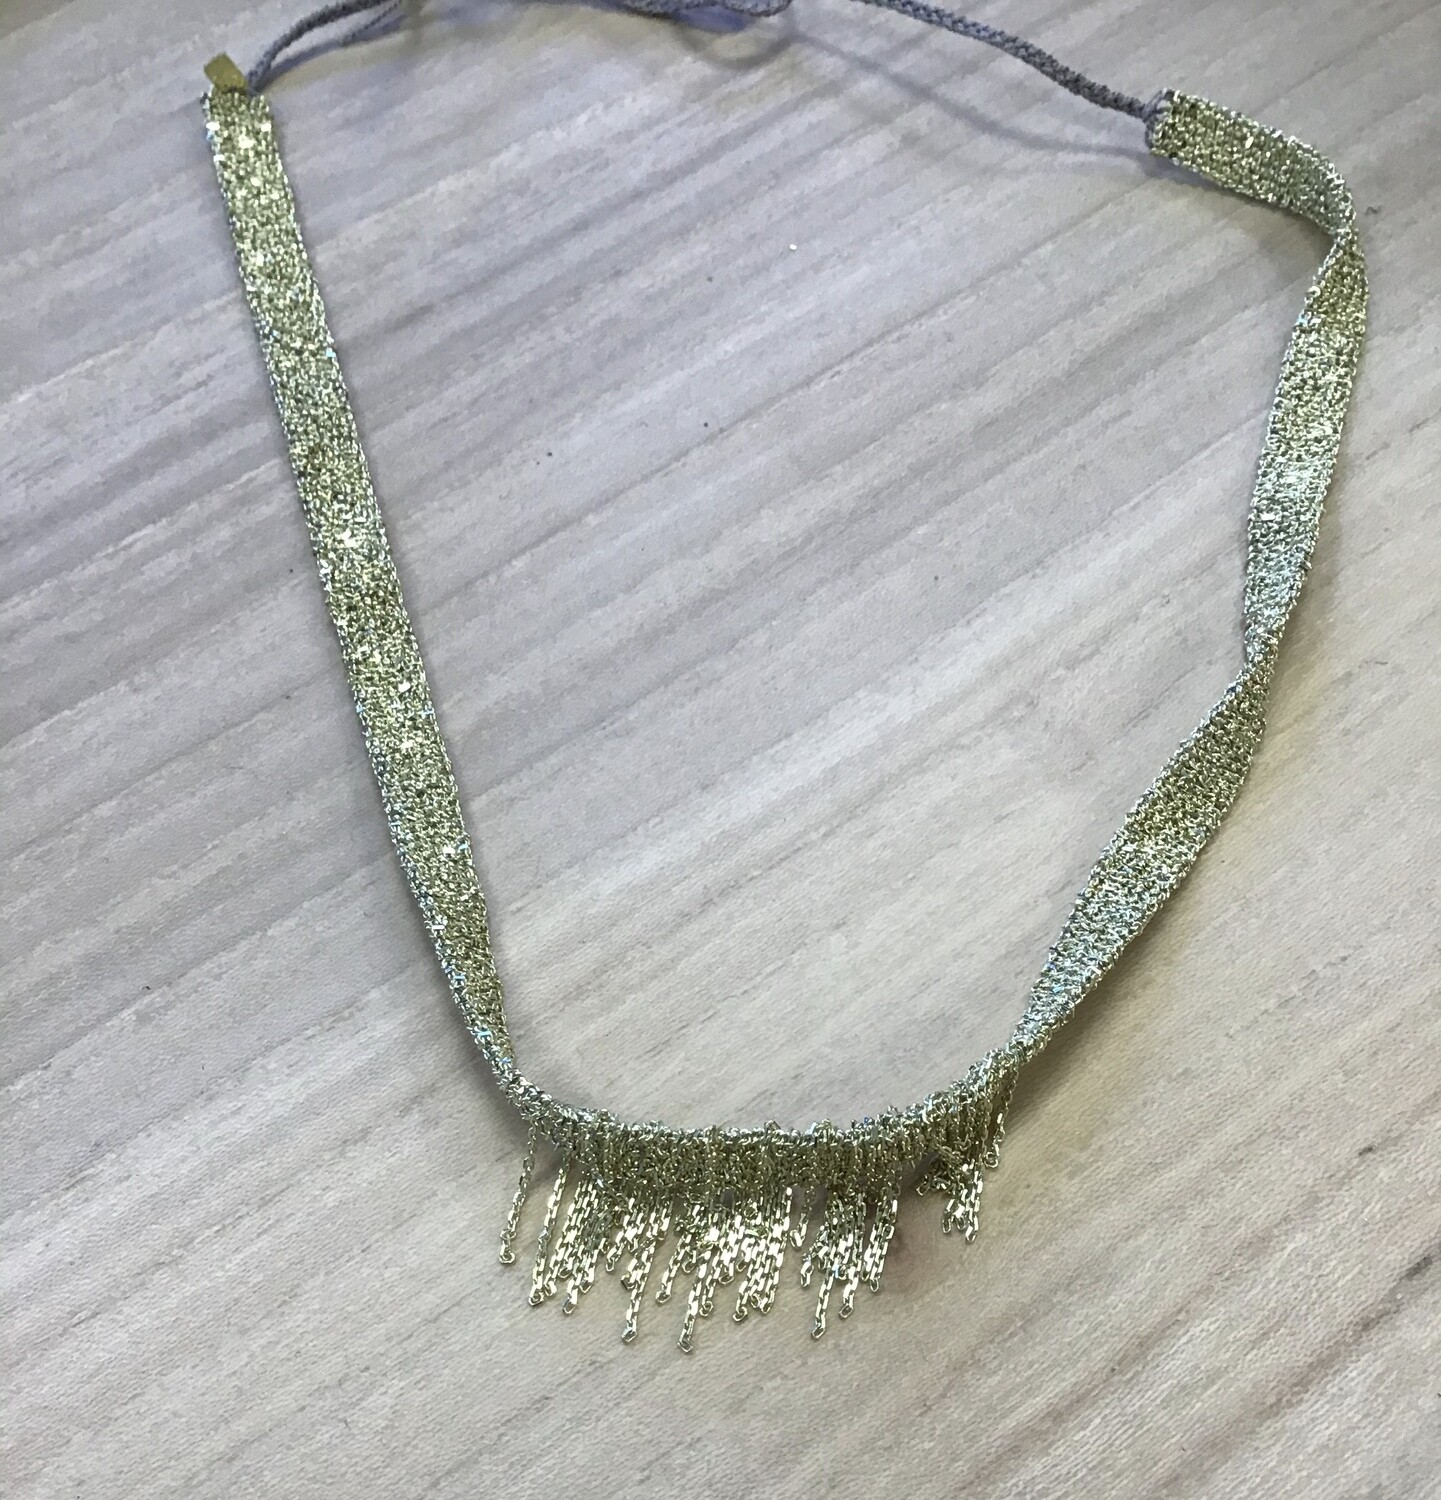 Sterling silver and gold fringe necklace, Marie Laure Chamorel